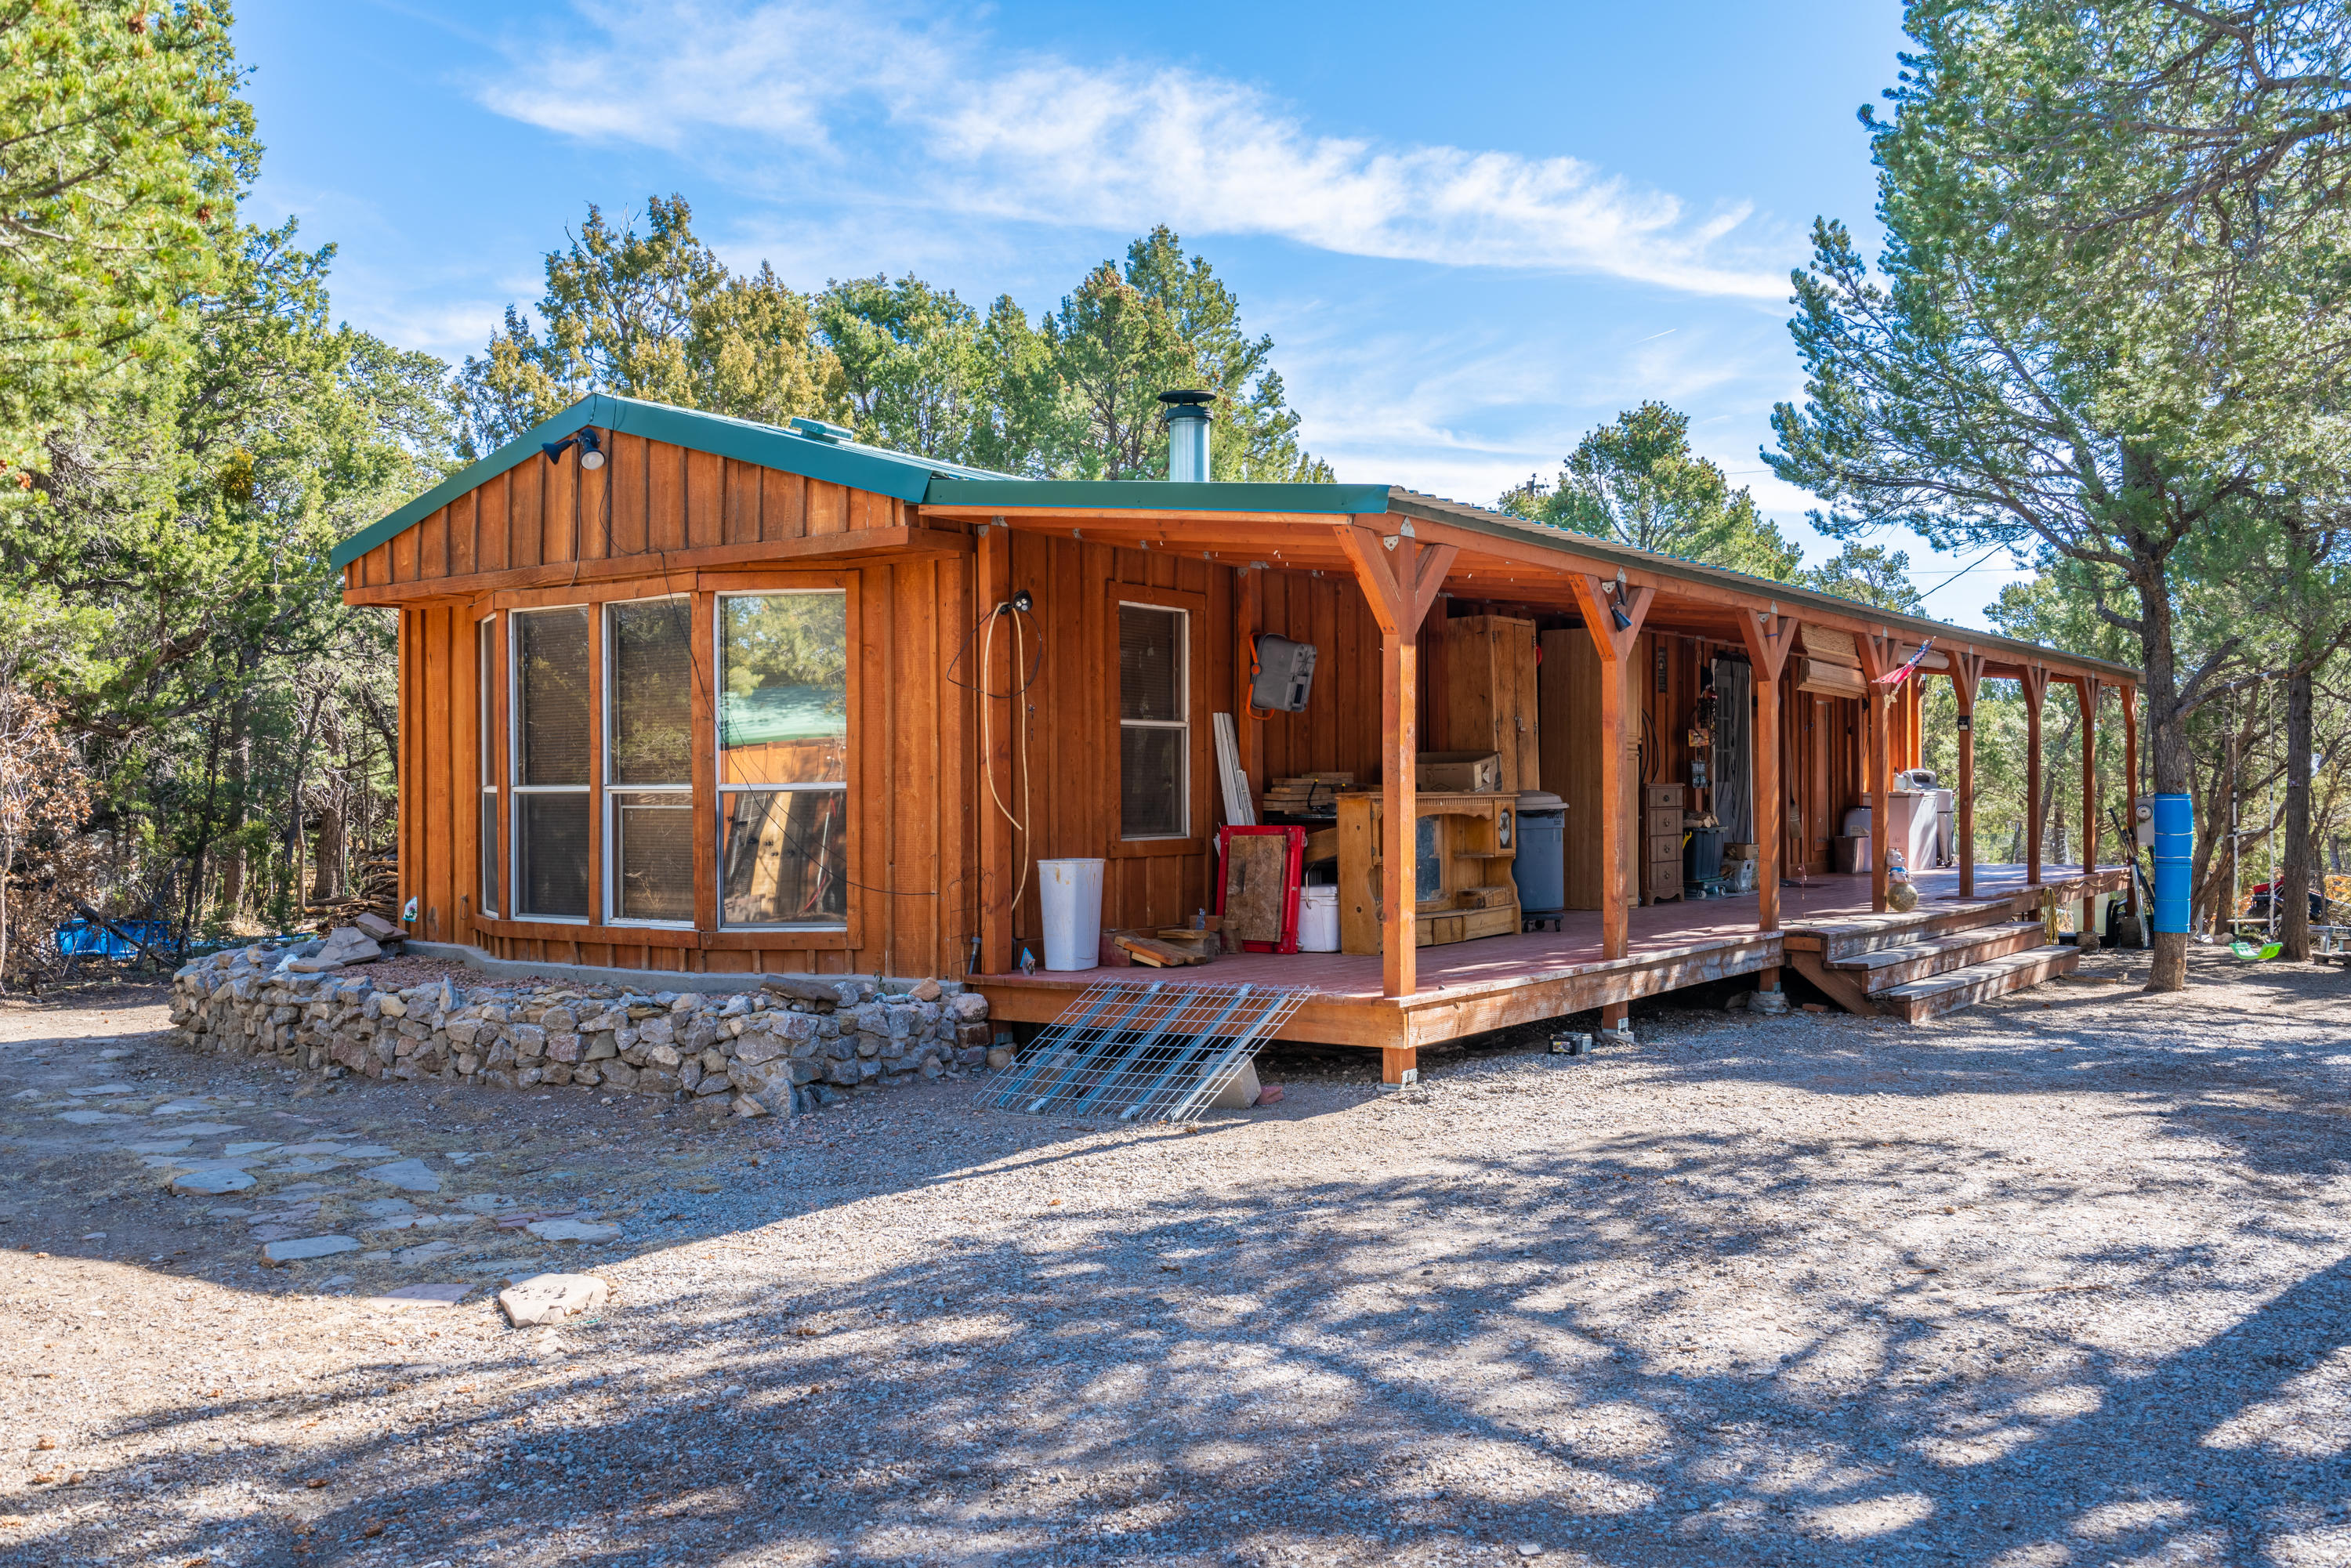 A wonderful secluded and peaceful ranch style home that's been recently updated and well taken care of. This home is located in such a great half acre space that the only noise you'll hear is the wind in the trees. The home also includes a RV pad and connections + workshop area to break down all the wood for a nice cozy fire place! Only 20 mins from ABQ, you can have the land and peace you've always wanted while being out of the city rush, but close enough to get to where you need. Schedule a private showing today! ( New floors to be added before closing)